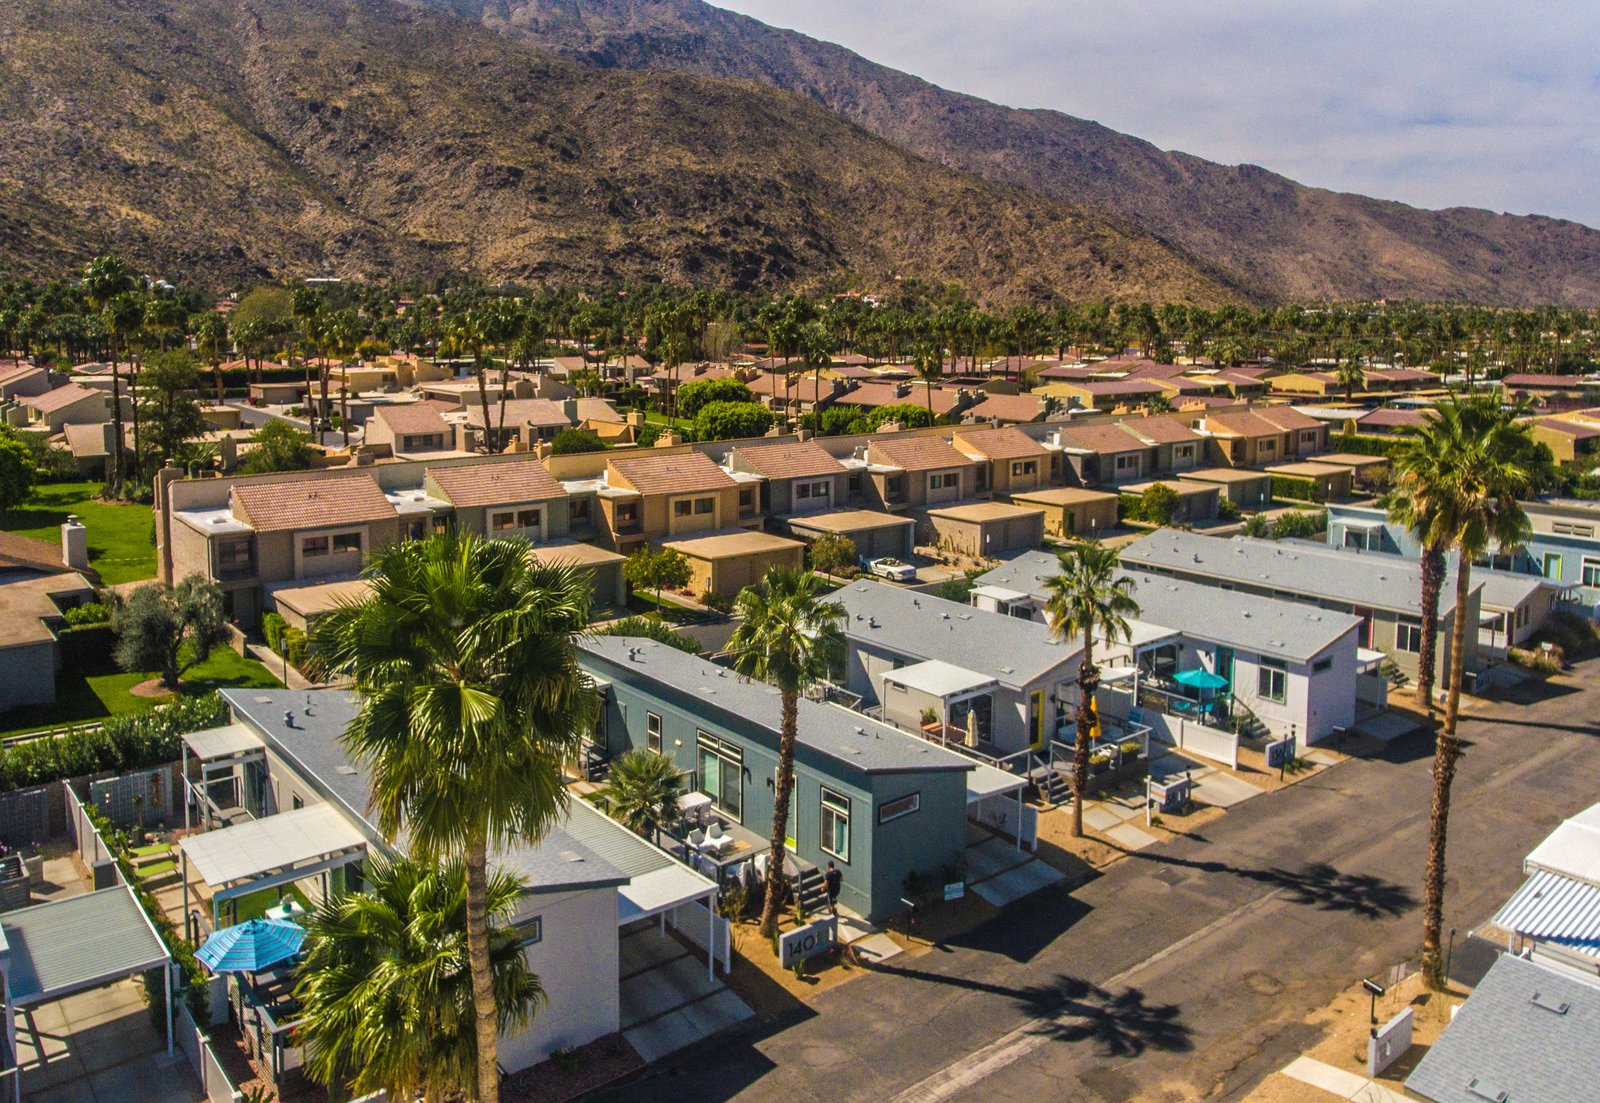 Exterior, Wood Siding Material, House Building Type, Shingles Roof Material, Prefab Building Type, and Shed RoofLine  Photo 6 of 10 in Tiny Homes in This Palm Springs Community Start at $155K